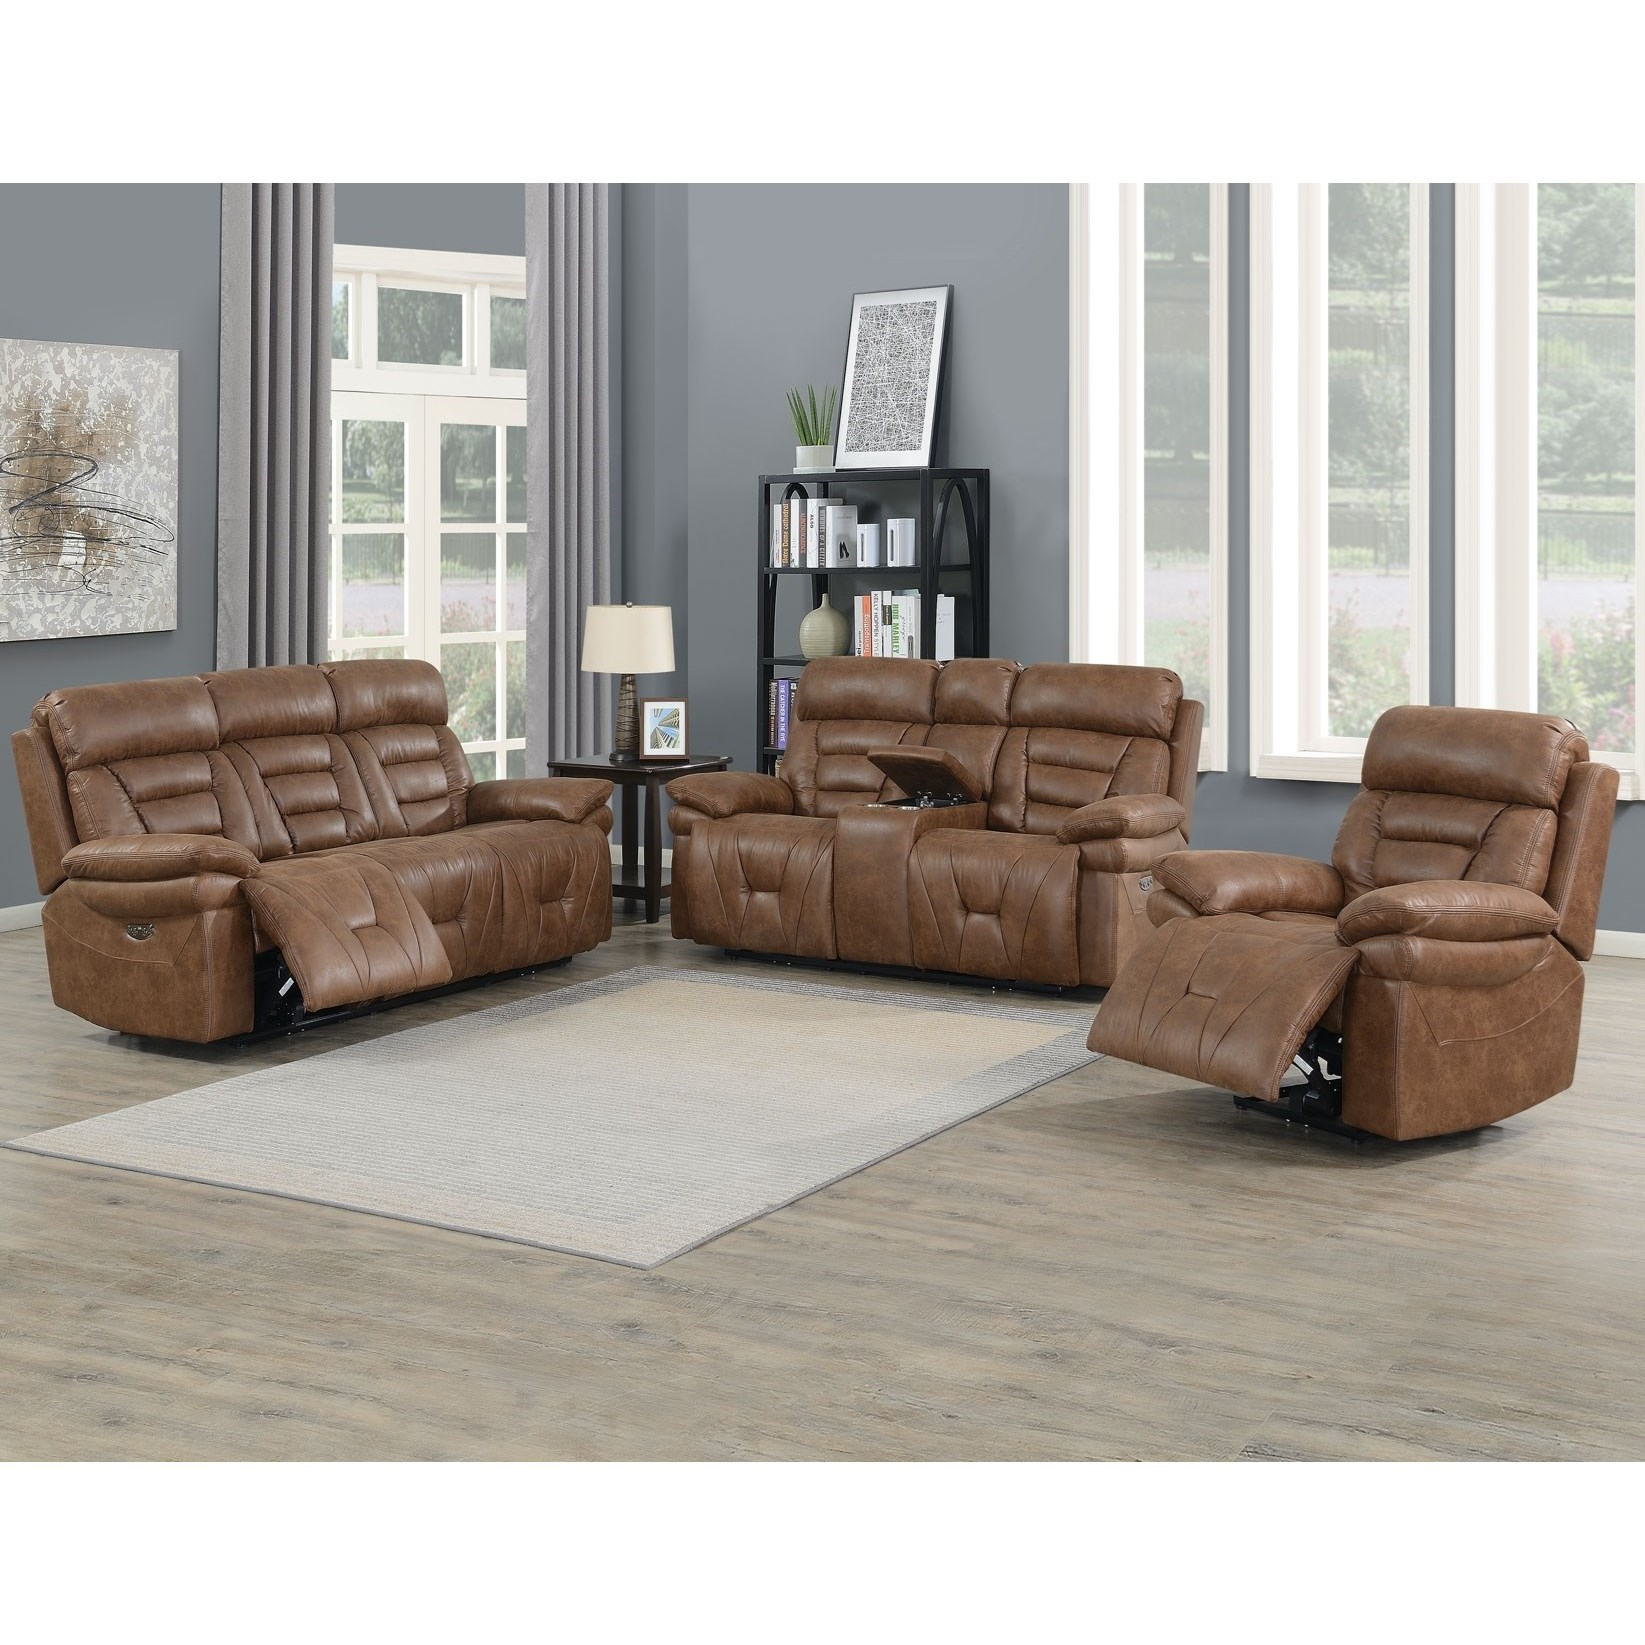 Brock Lay Flat Power Reclining Living Room Group by Steve Silver at Northeast Factory Direct